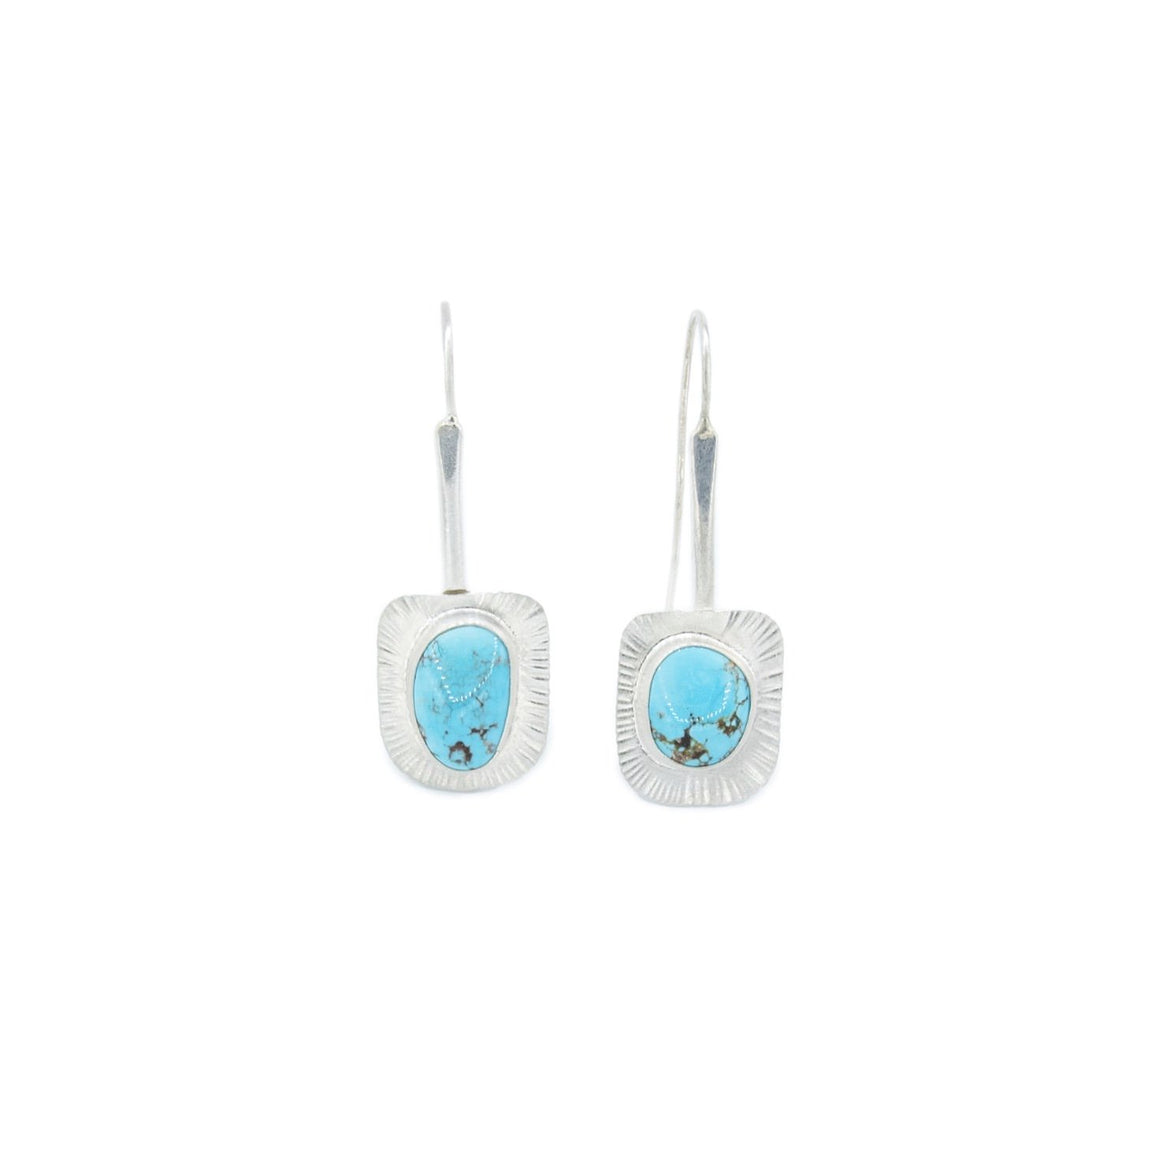 Blue Moon Turquoise Earrings by Original Sin Jewelry